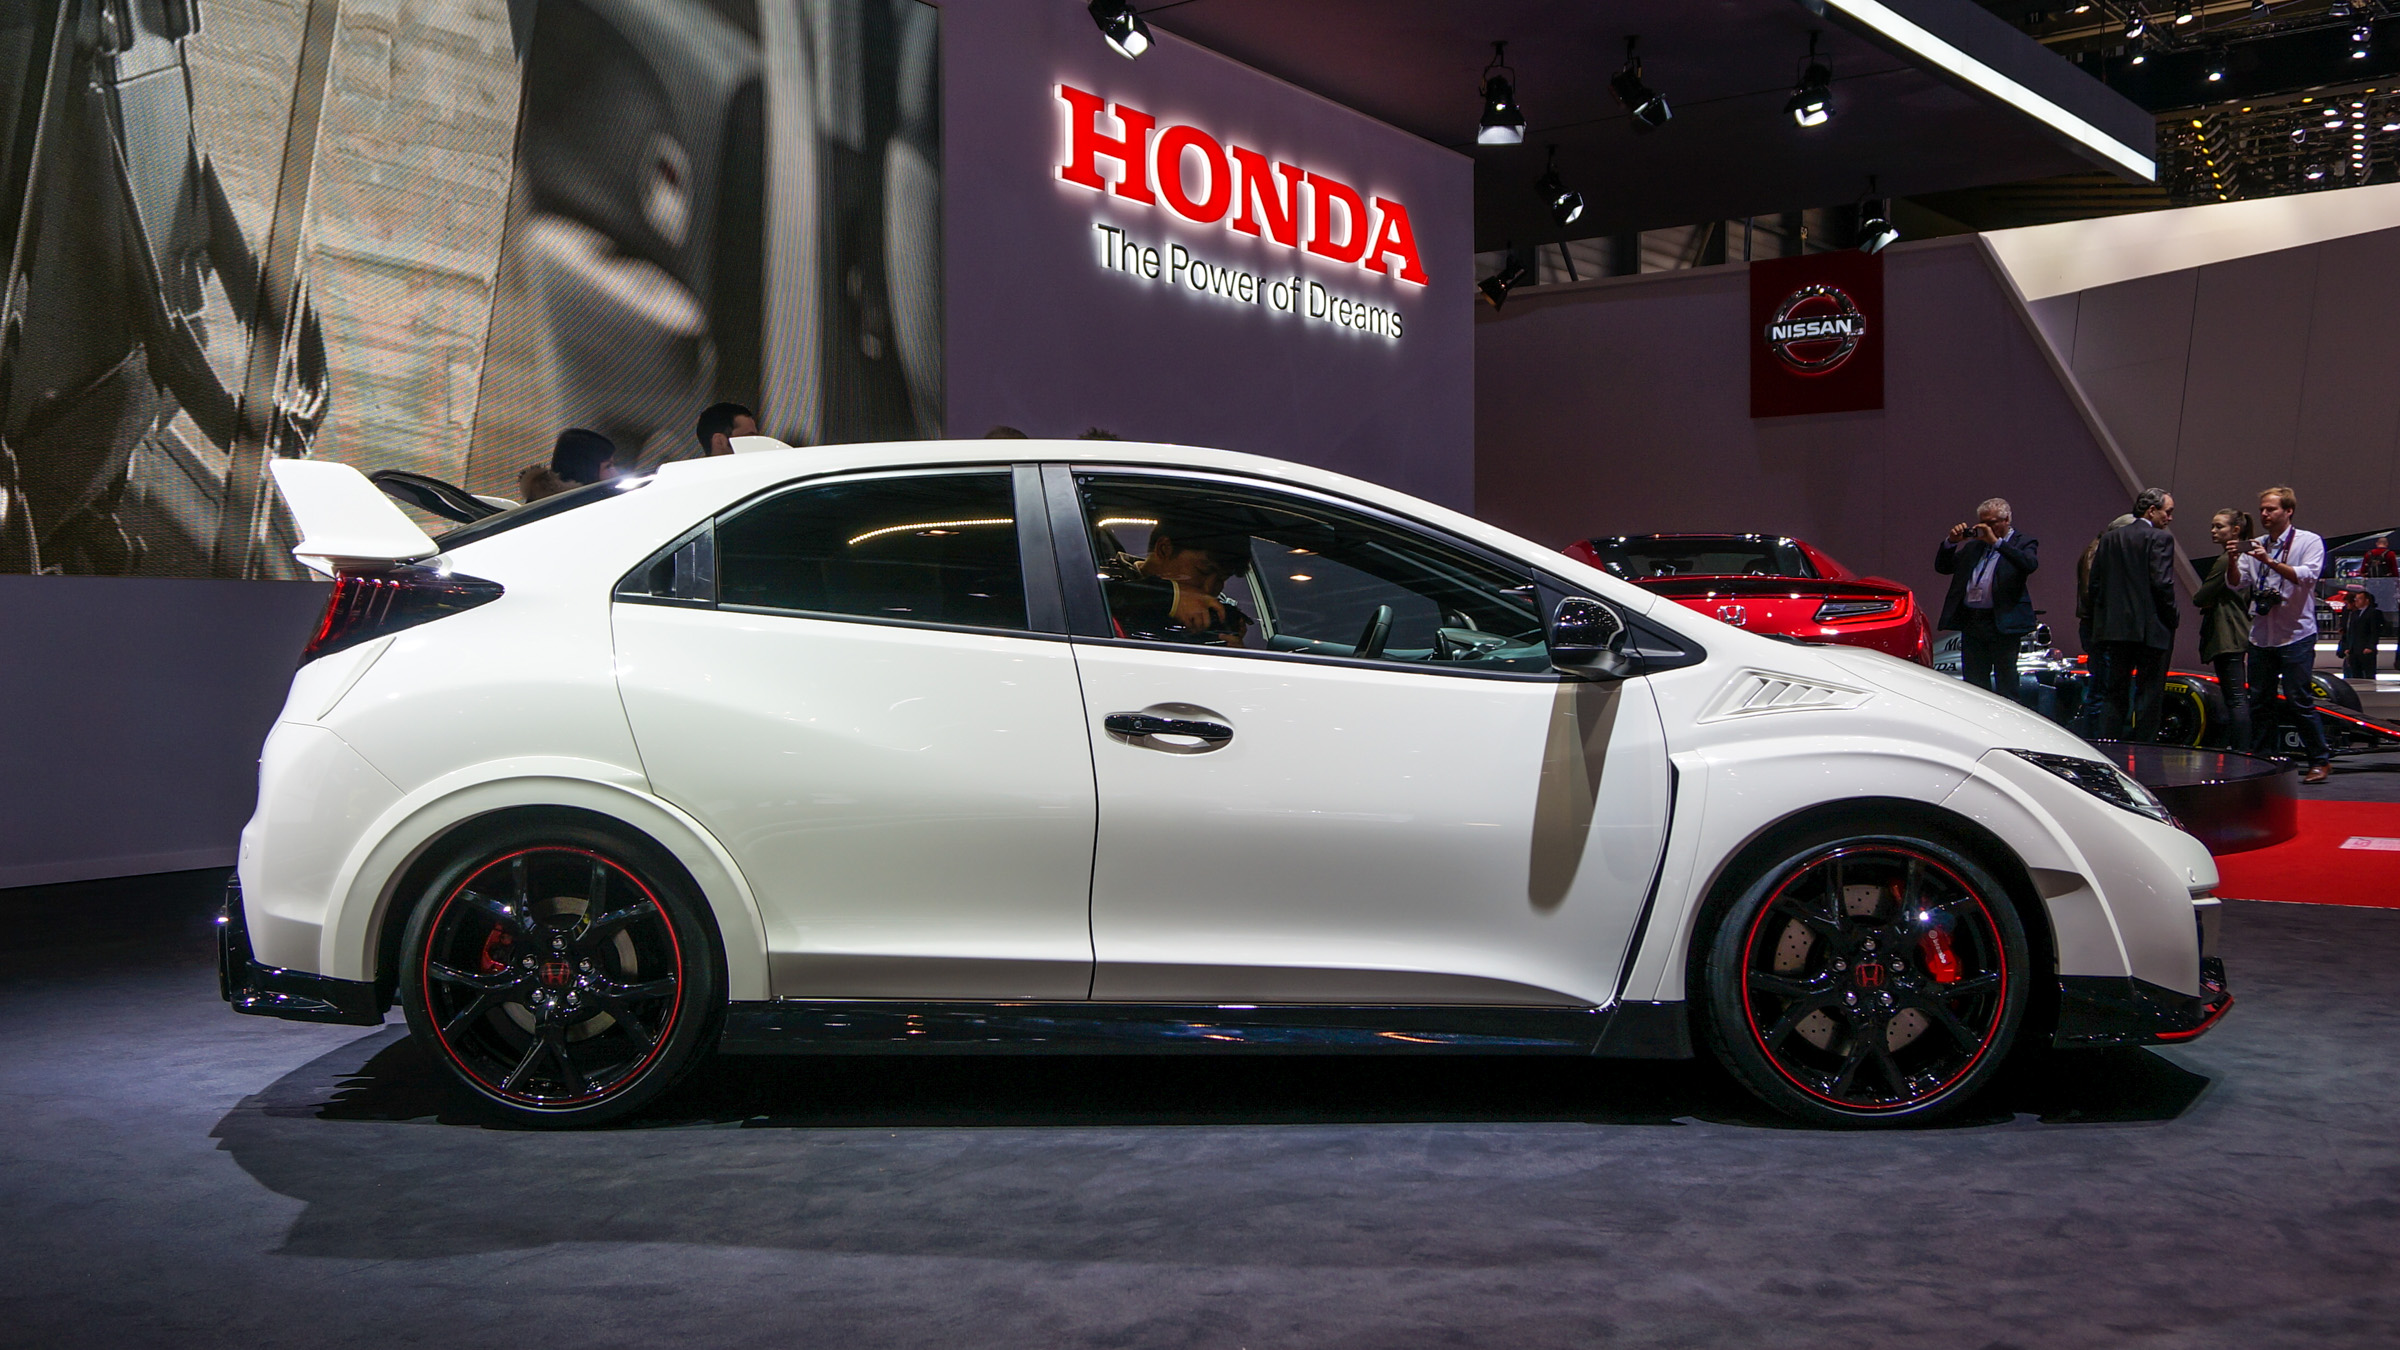 honda 39 s new type r is the hottest hatchback in the world. Black Bedroom Furniture Sets. Home Design Ideas